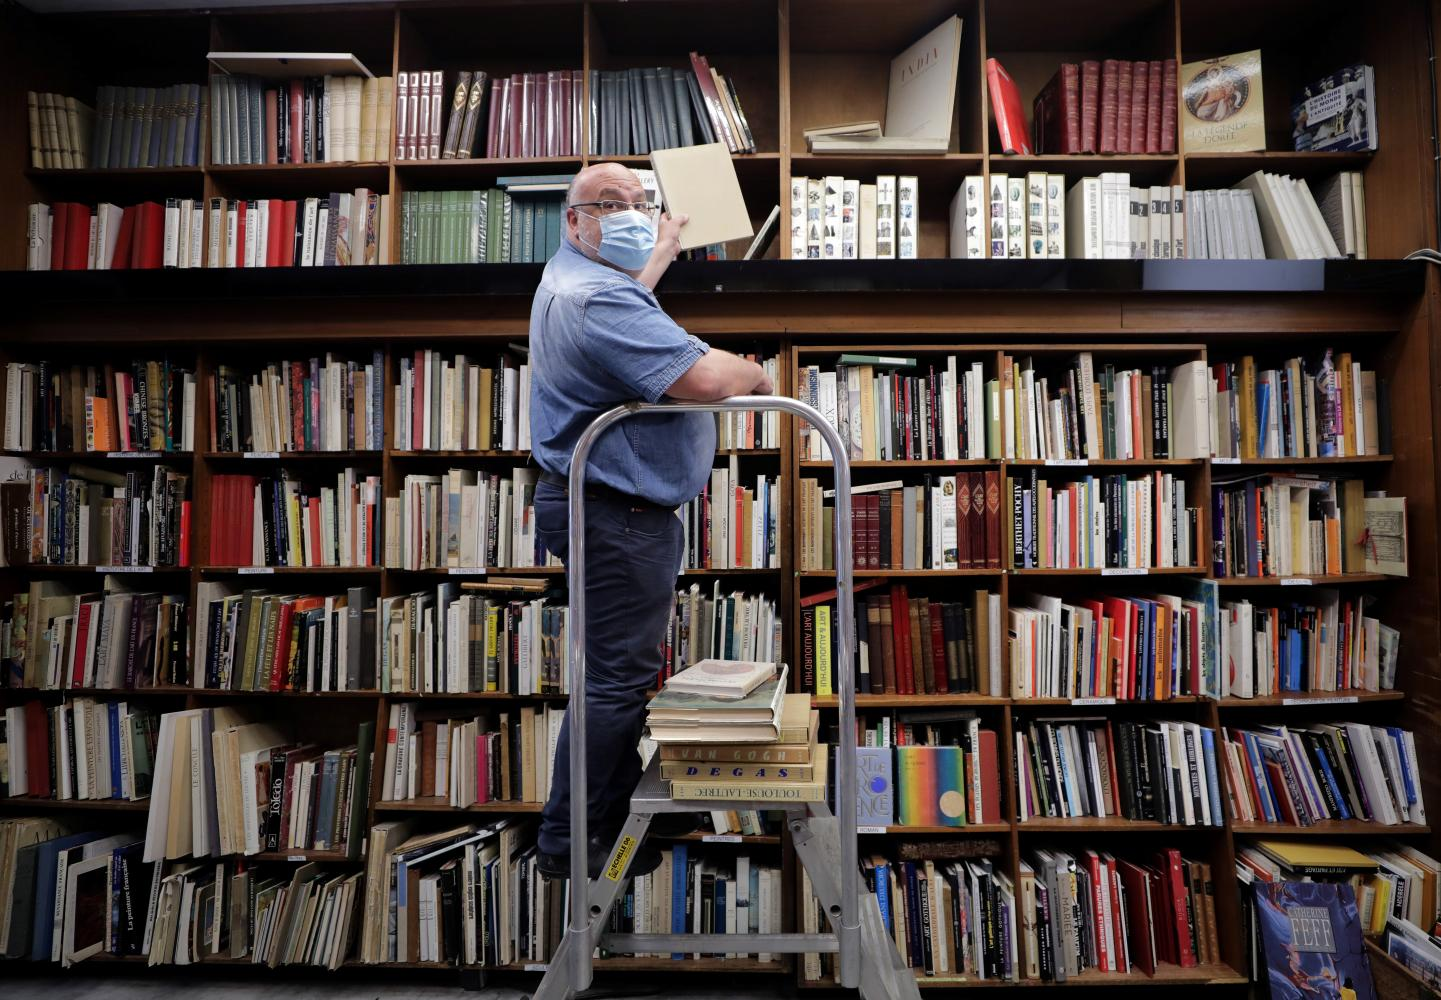 France S Bookstores Fight For Survival After Coronavirus Lockdown